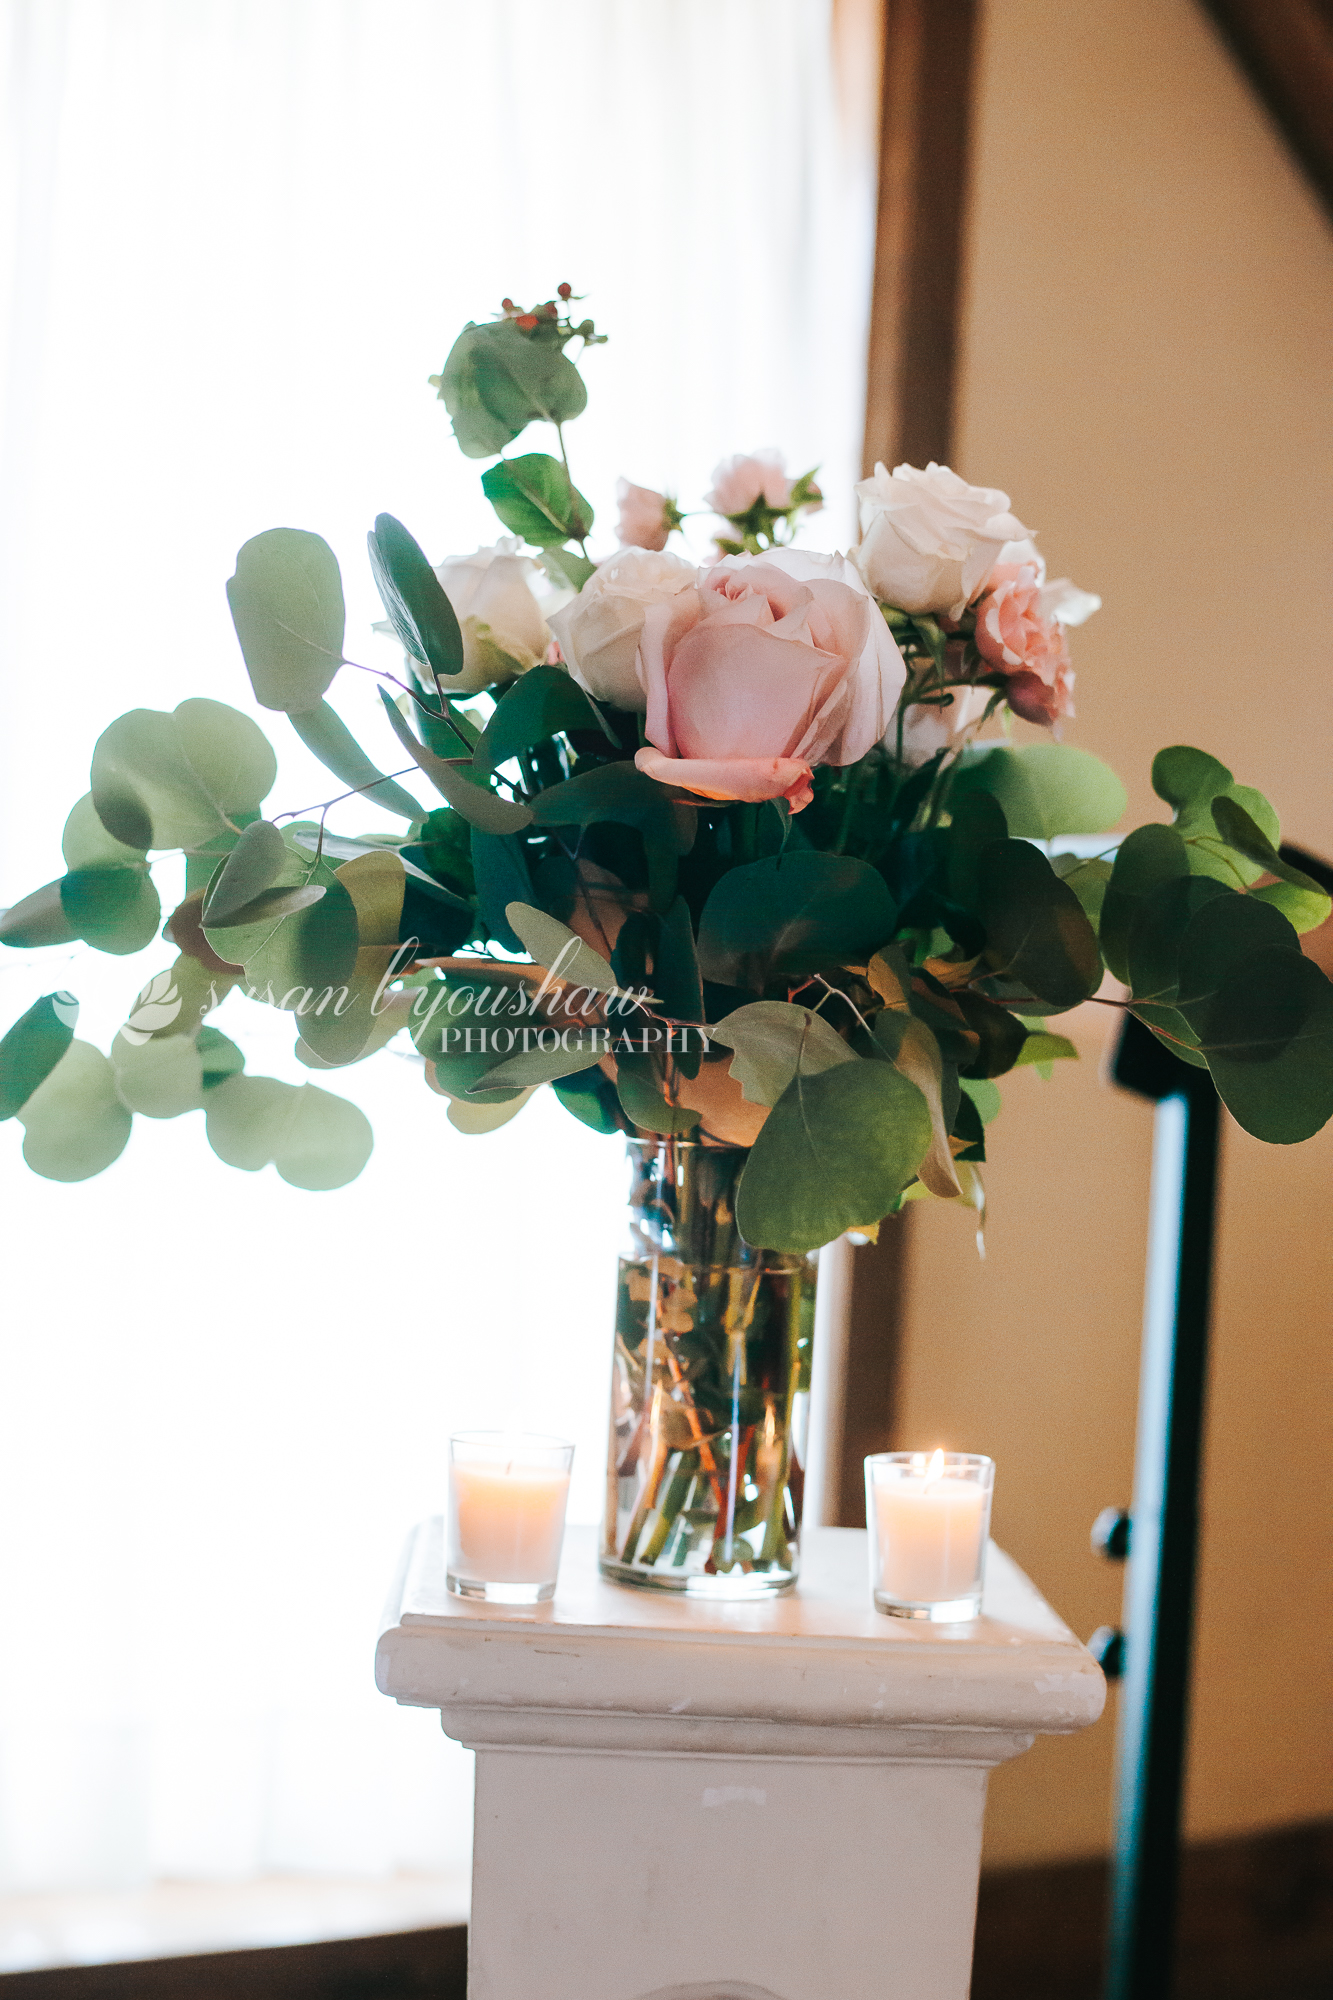 Chynna and John Wedding 05-18-2019 SLY Photography-89.jpg